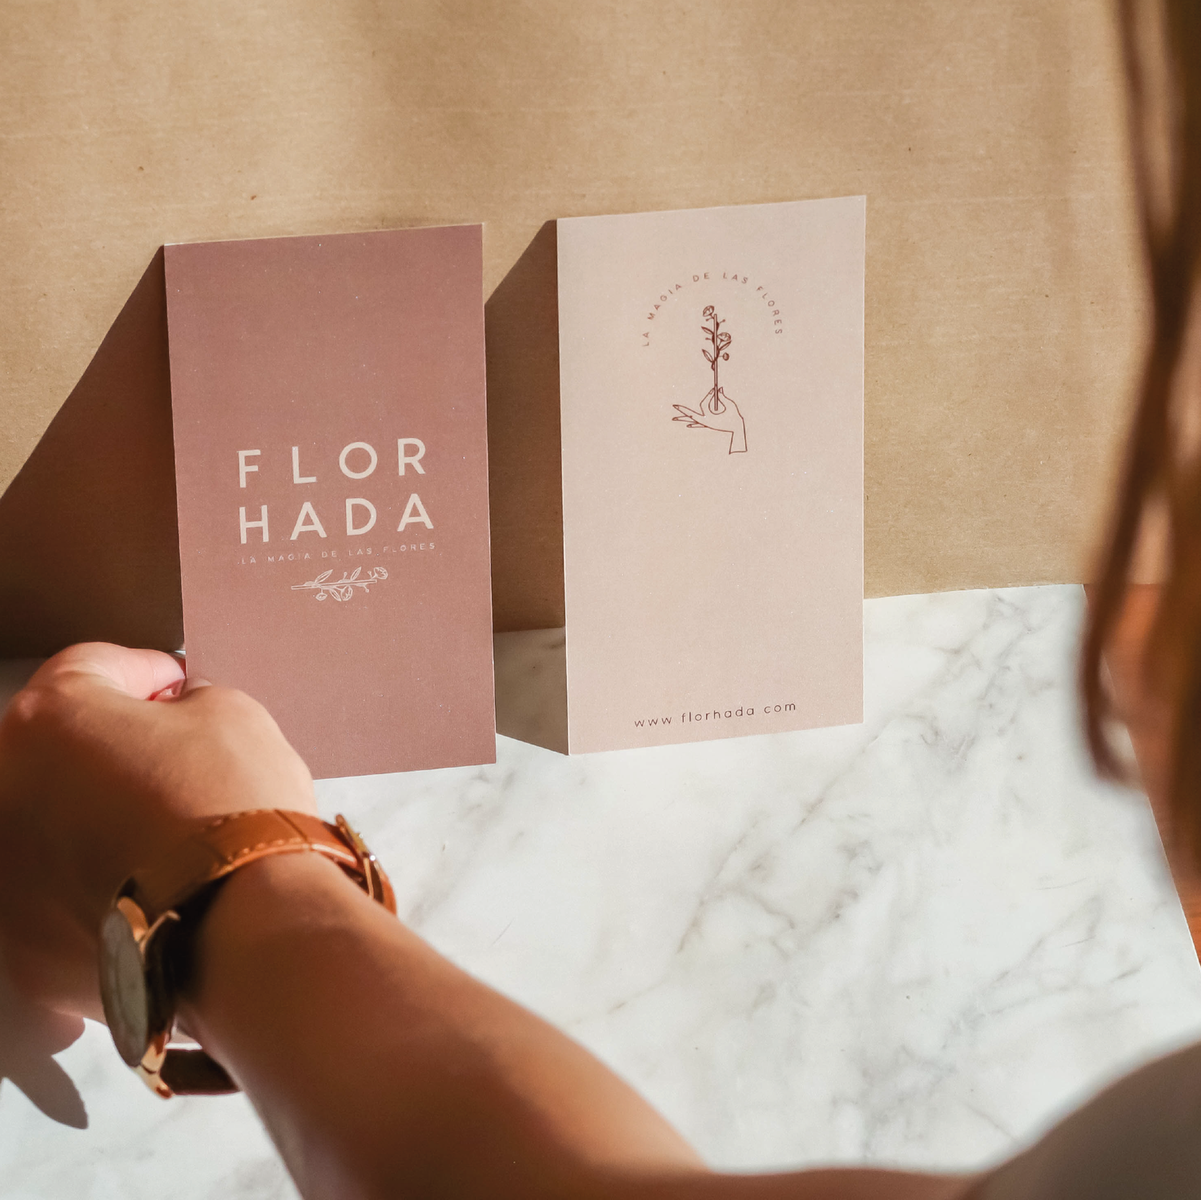 Branding for a Floral Shop in Seville